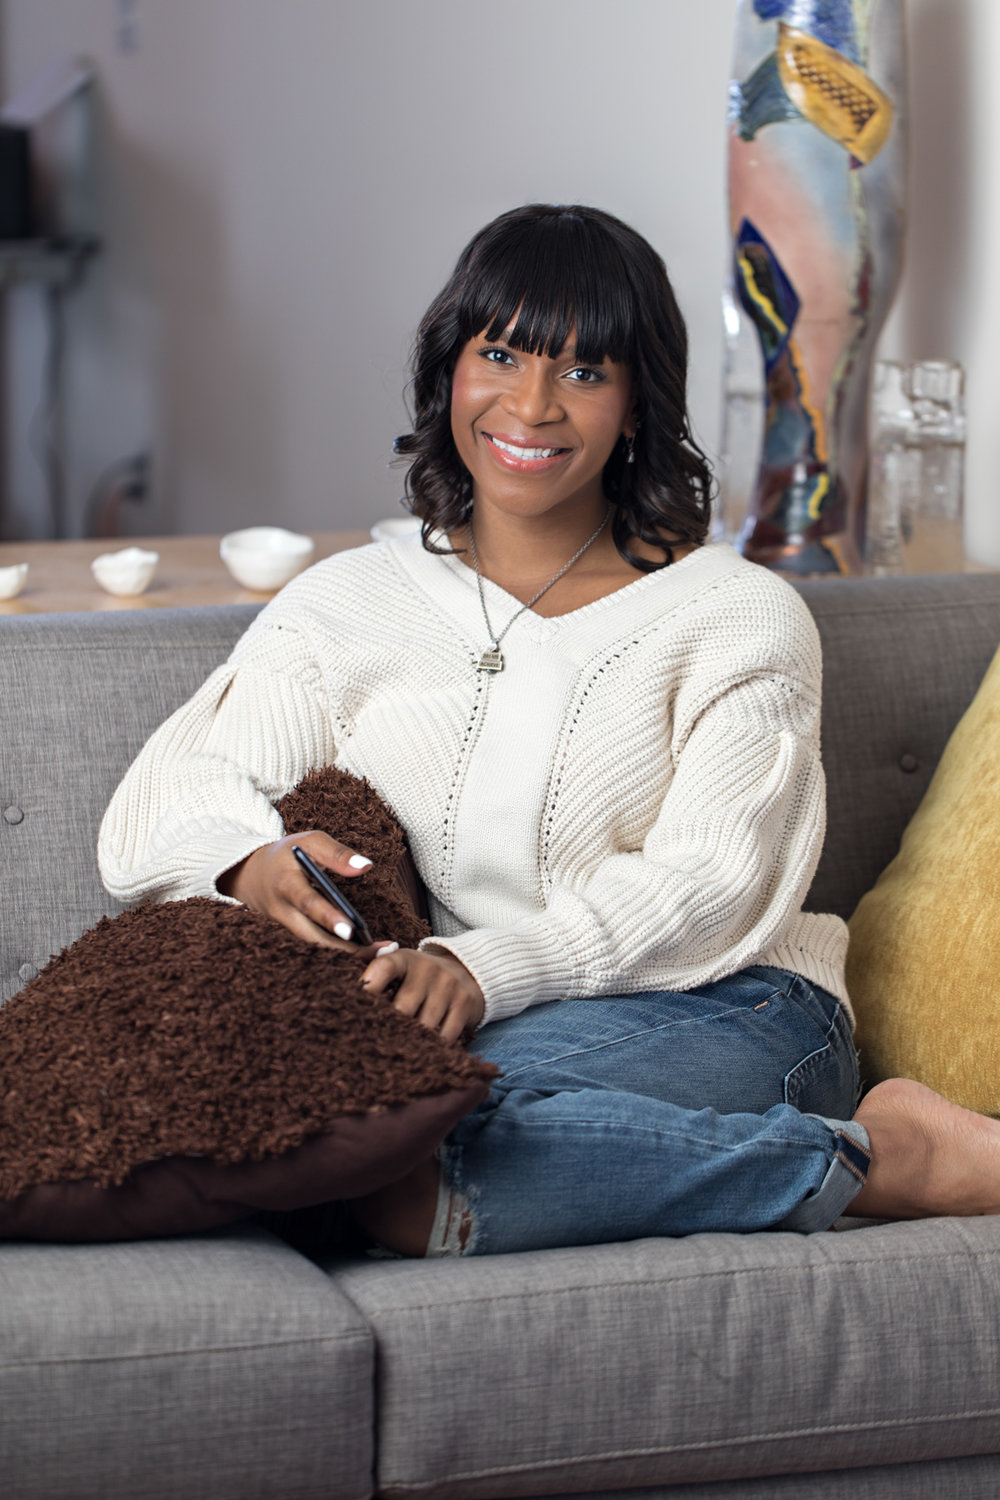 sharon hadden sitting on cozy couch in cream sweater and ripped jeans with glowing makeup by kim baker beauty san jose california makeup artist